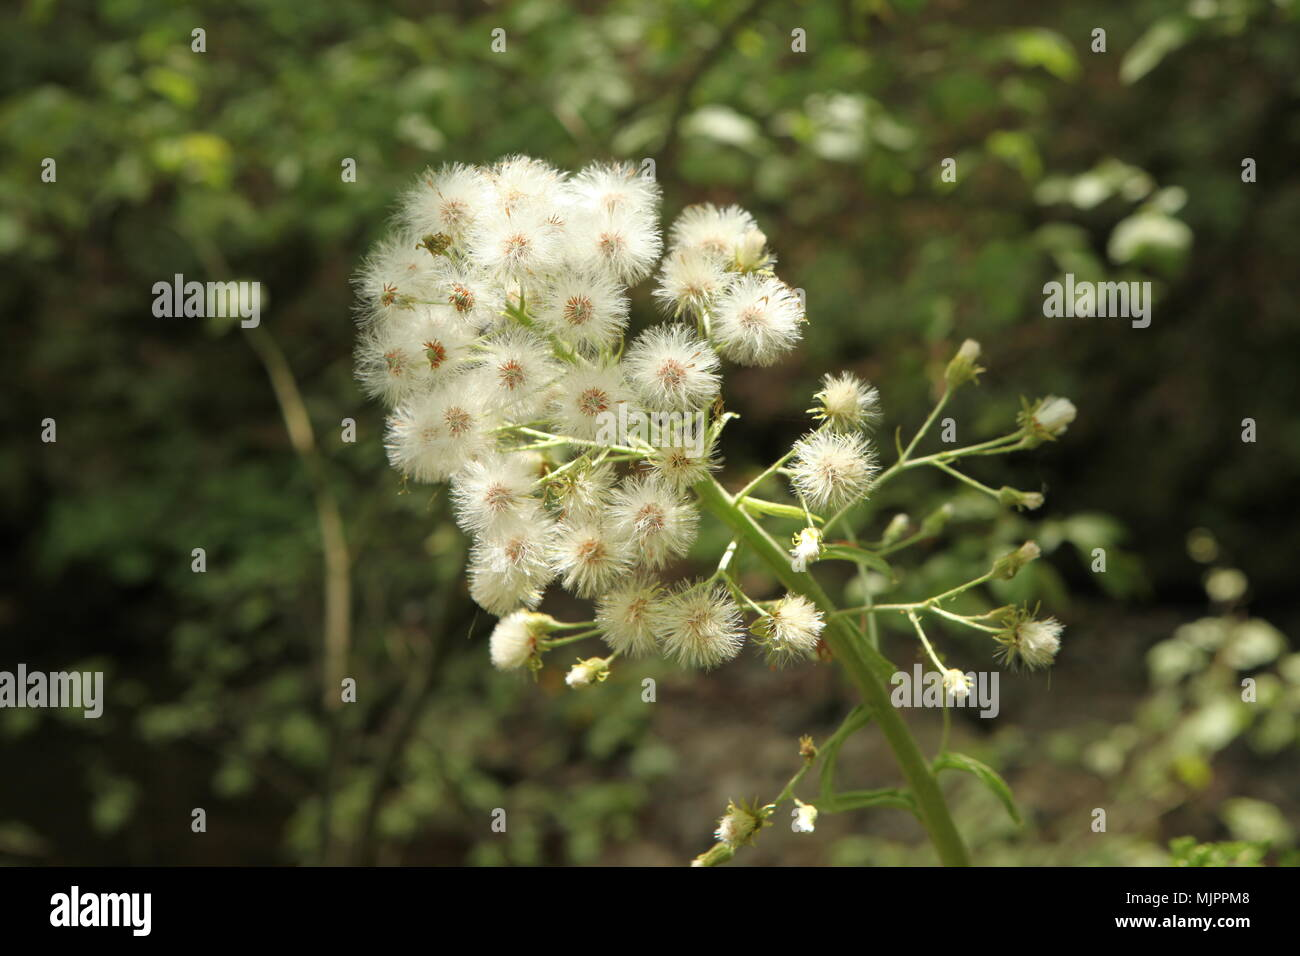 white flower on a twig - Stock Image